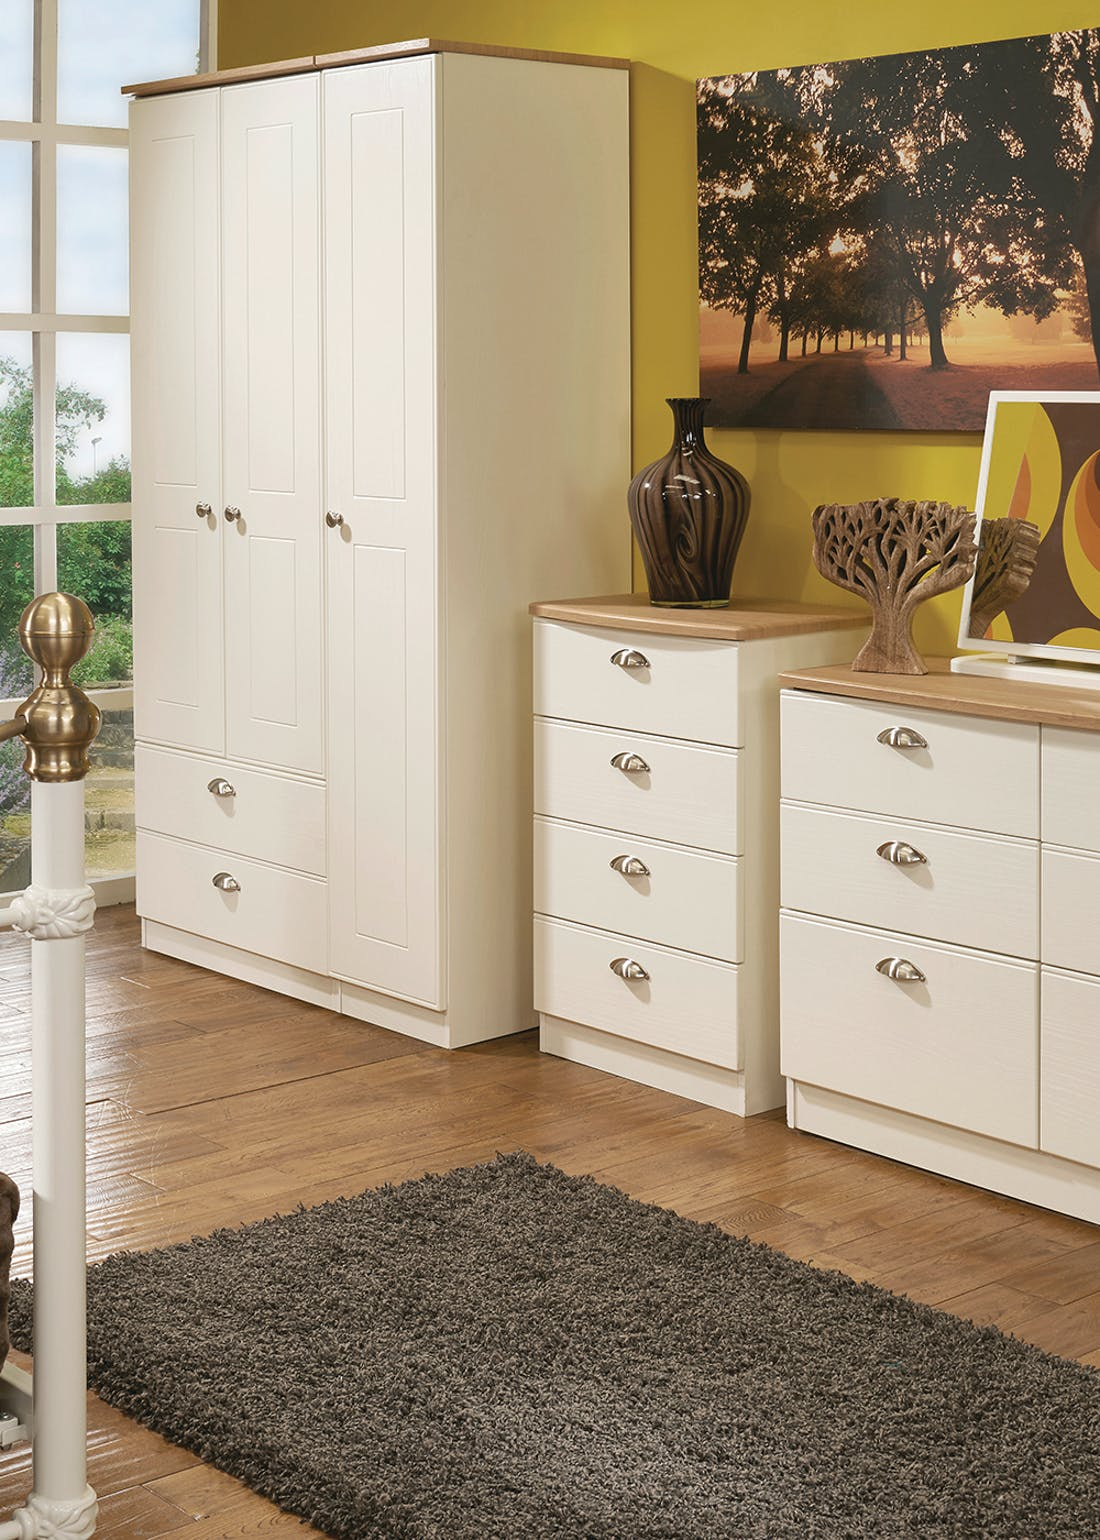 Swift Stamford 4 Drawer End of Bed Chest (50.5cm x 112cm x 41.5cm)